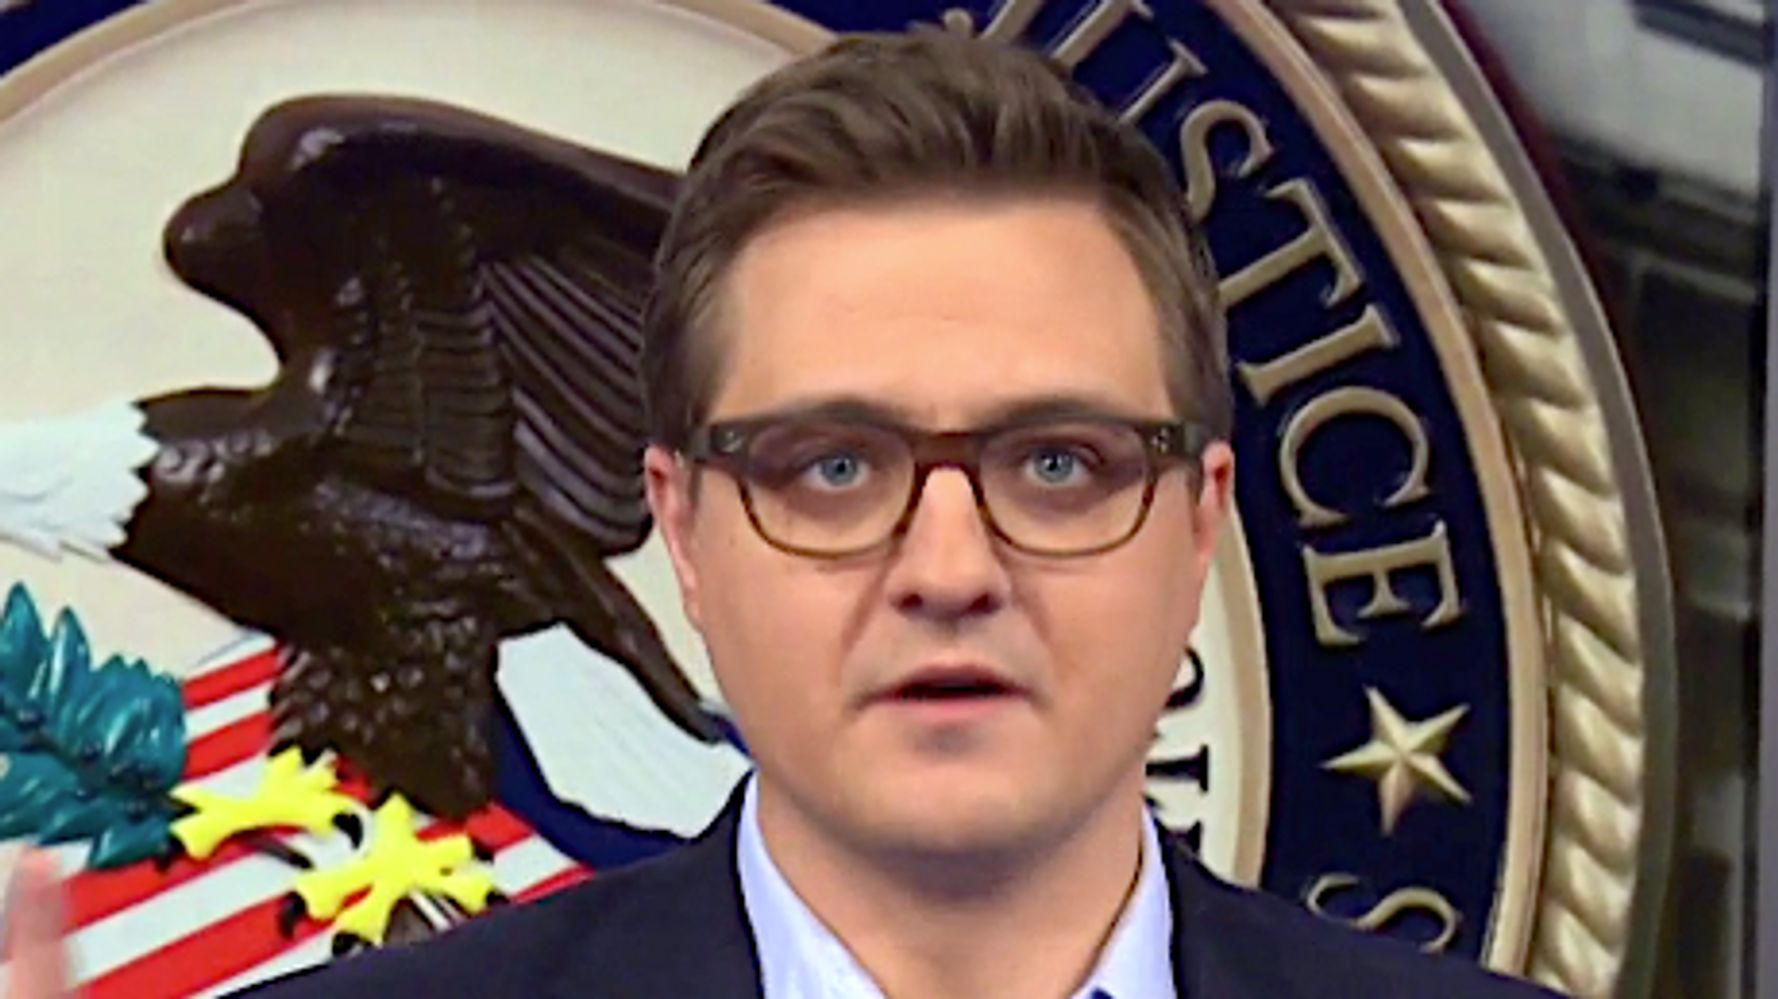 Chris Hayes Names Only Thing Standing Against 'Authoritarian Decline' Under Trump